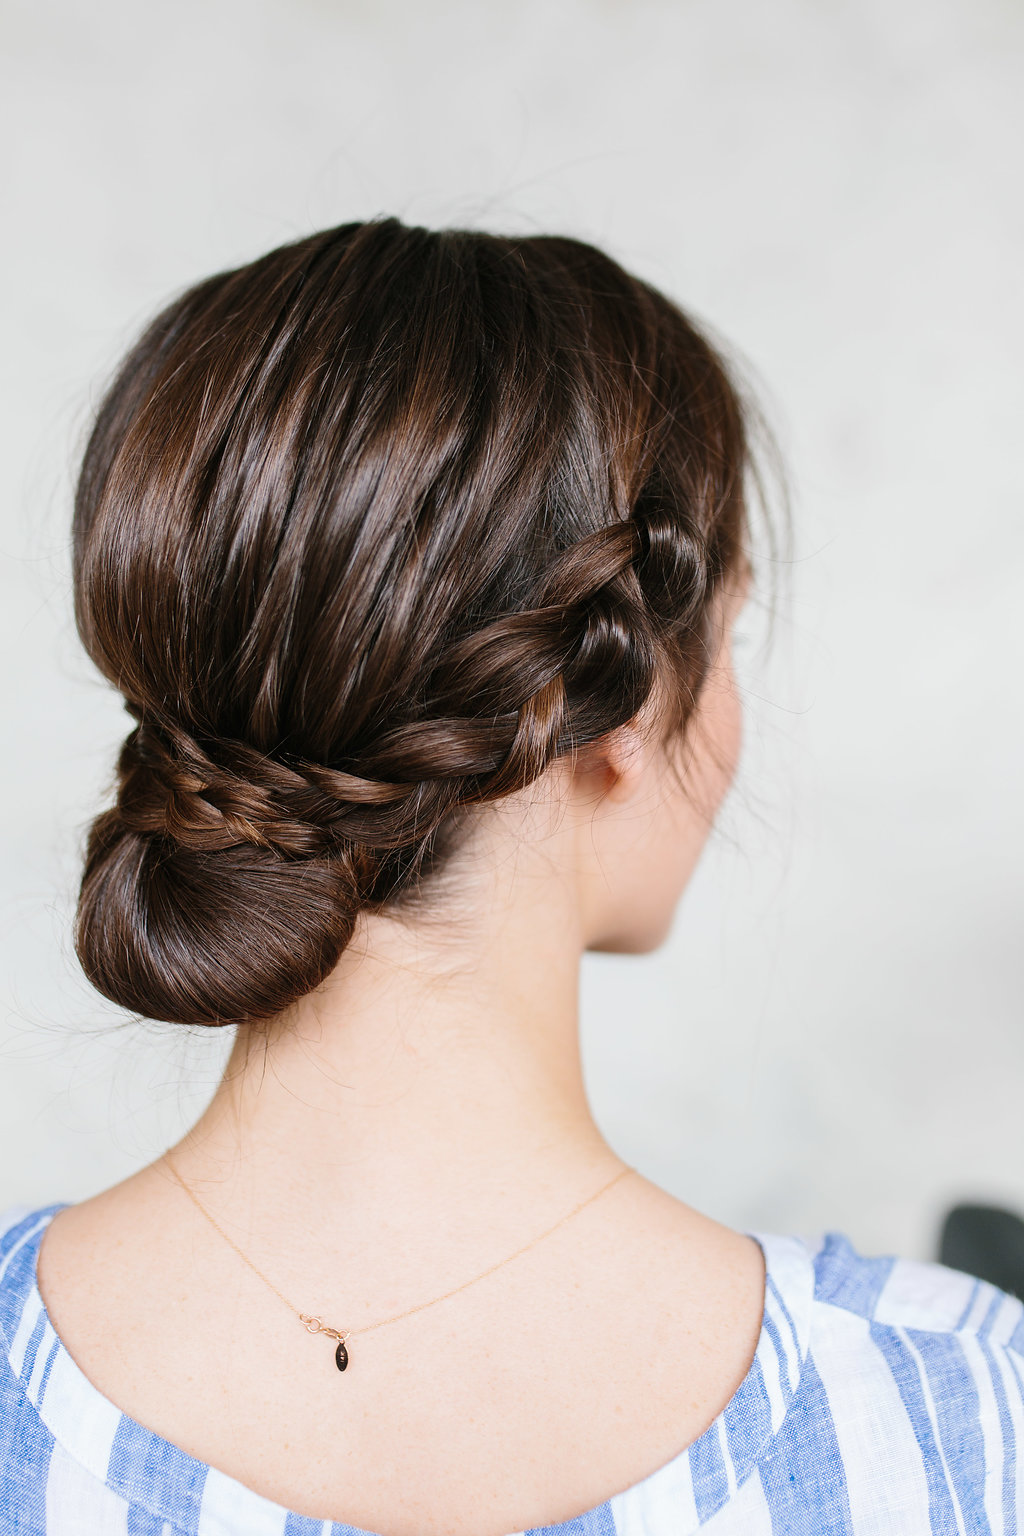 A woman wearing a braided bun